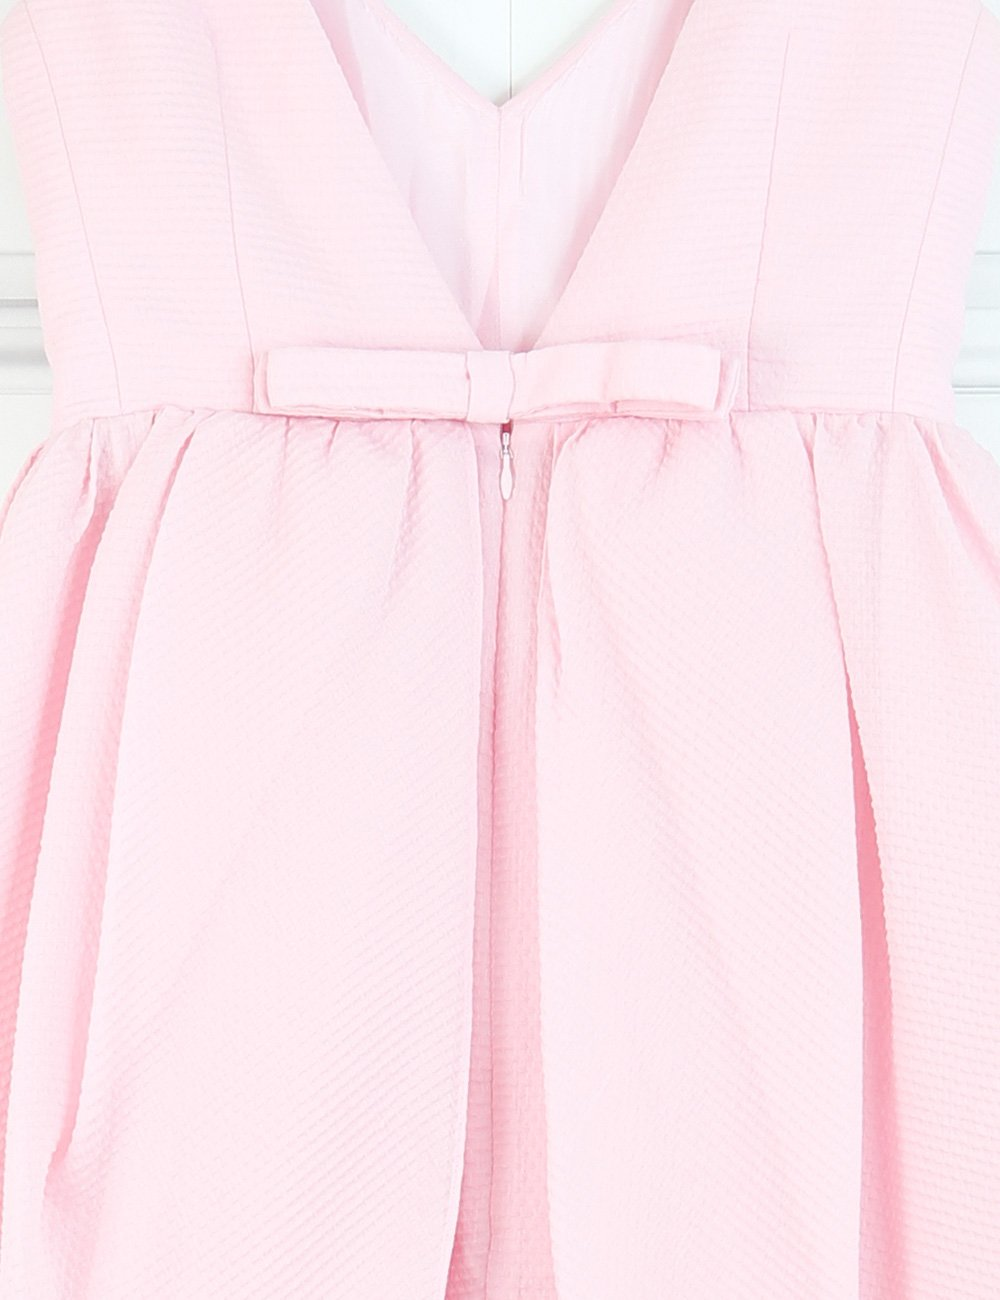 Carven pink long v-neck dress 8Uk- My Wardrobe Mistakes